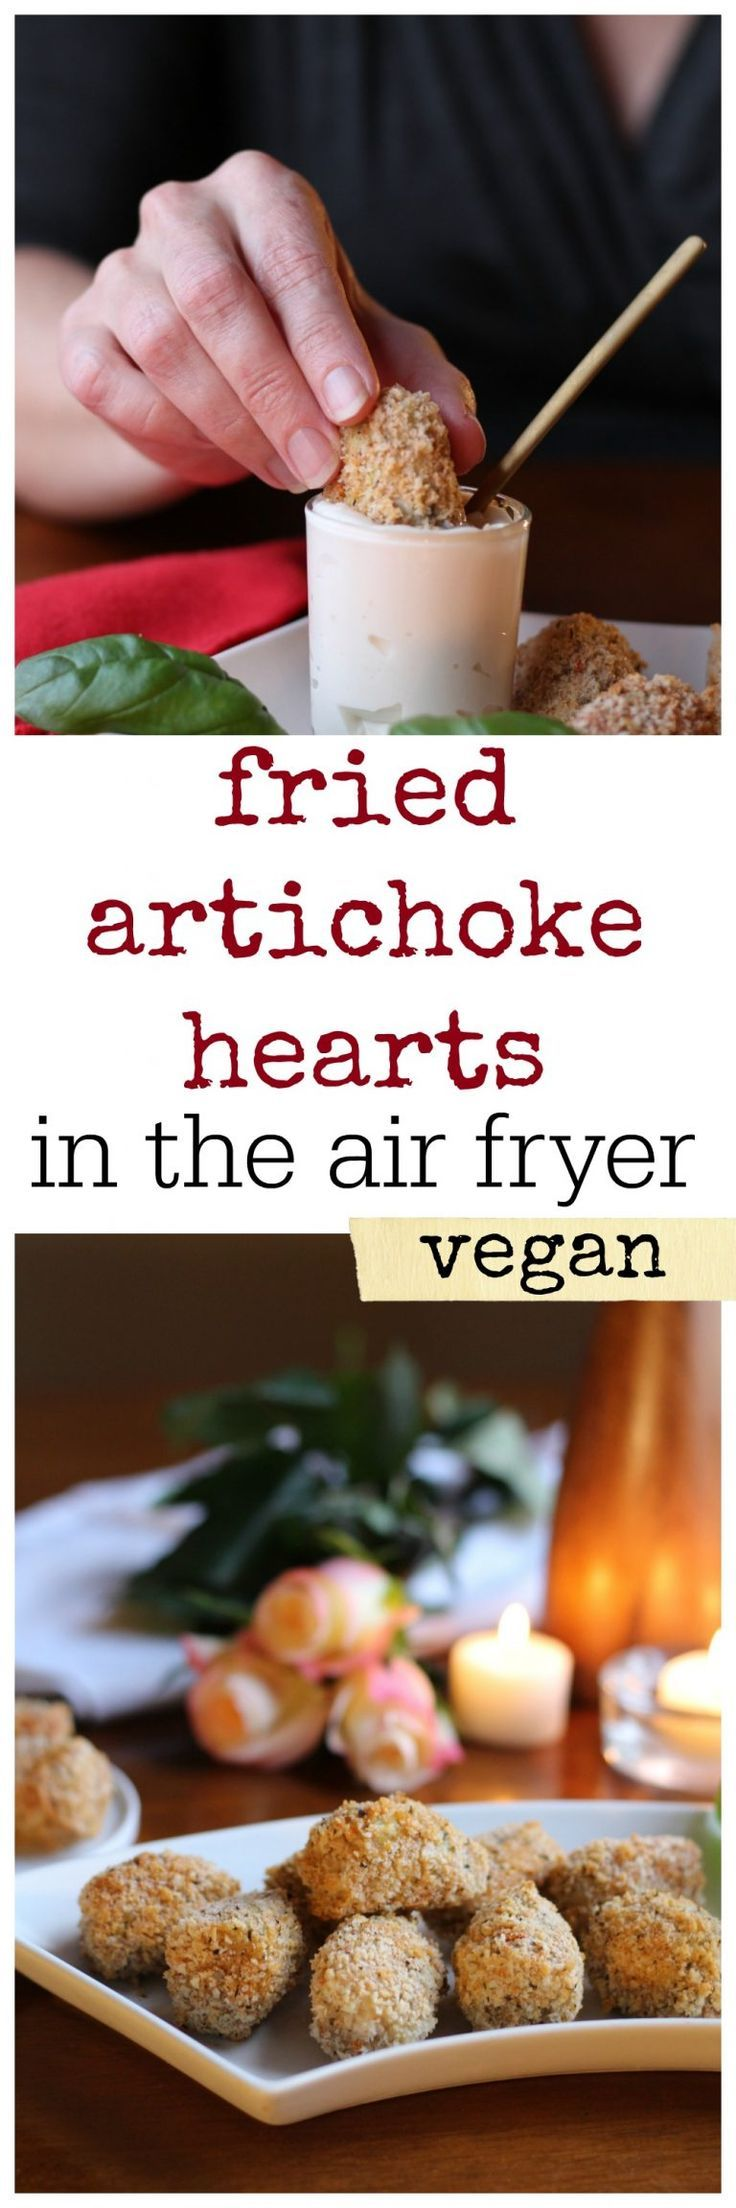 Fried Artichoke Hearts In The Air Fryer Vegan Aioli